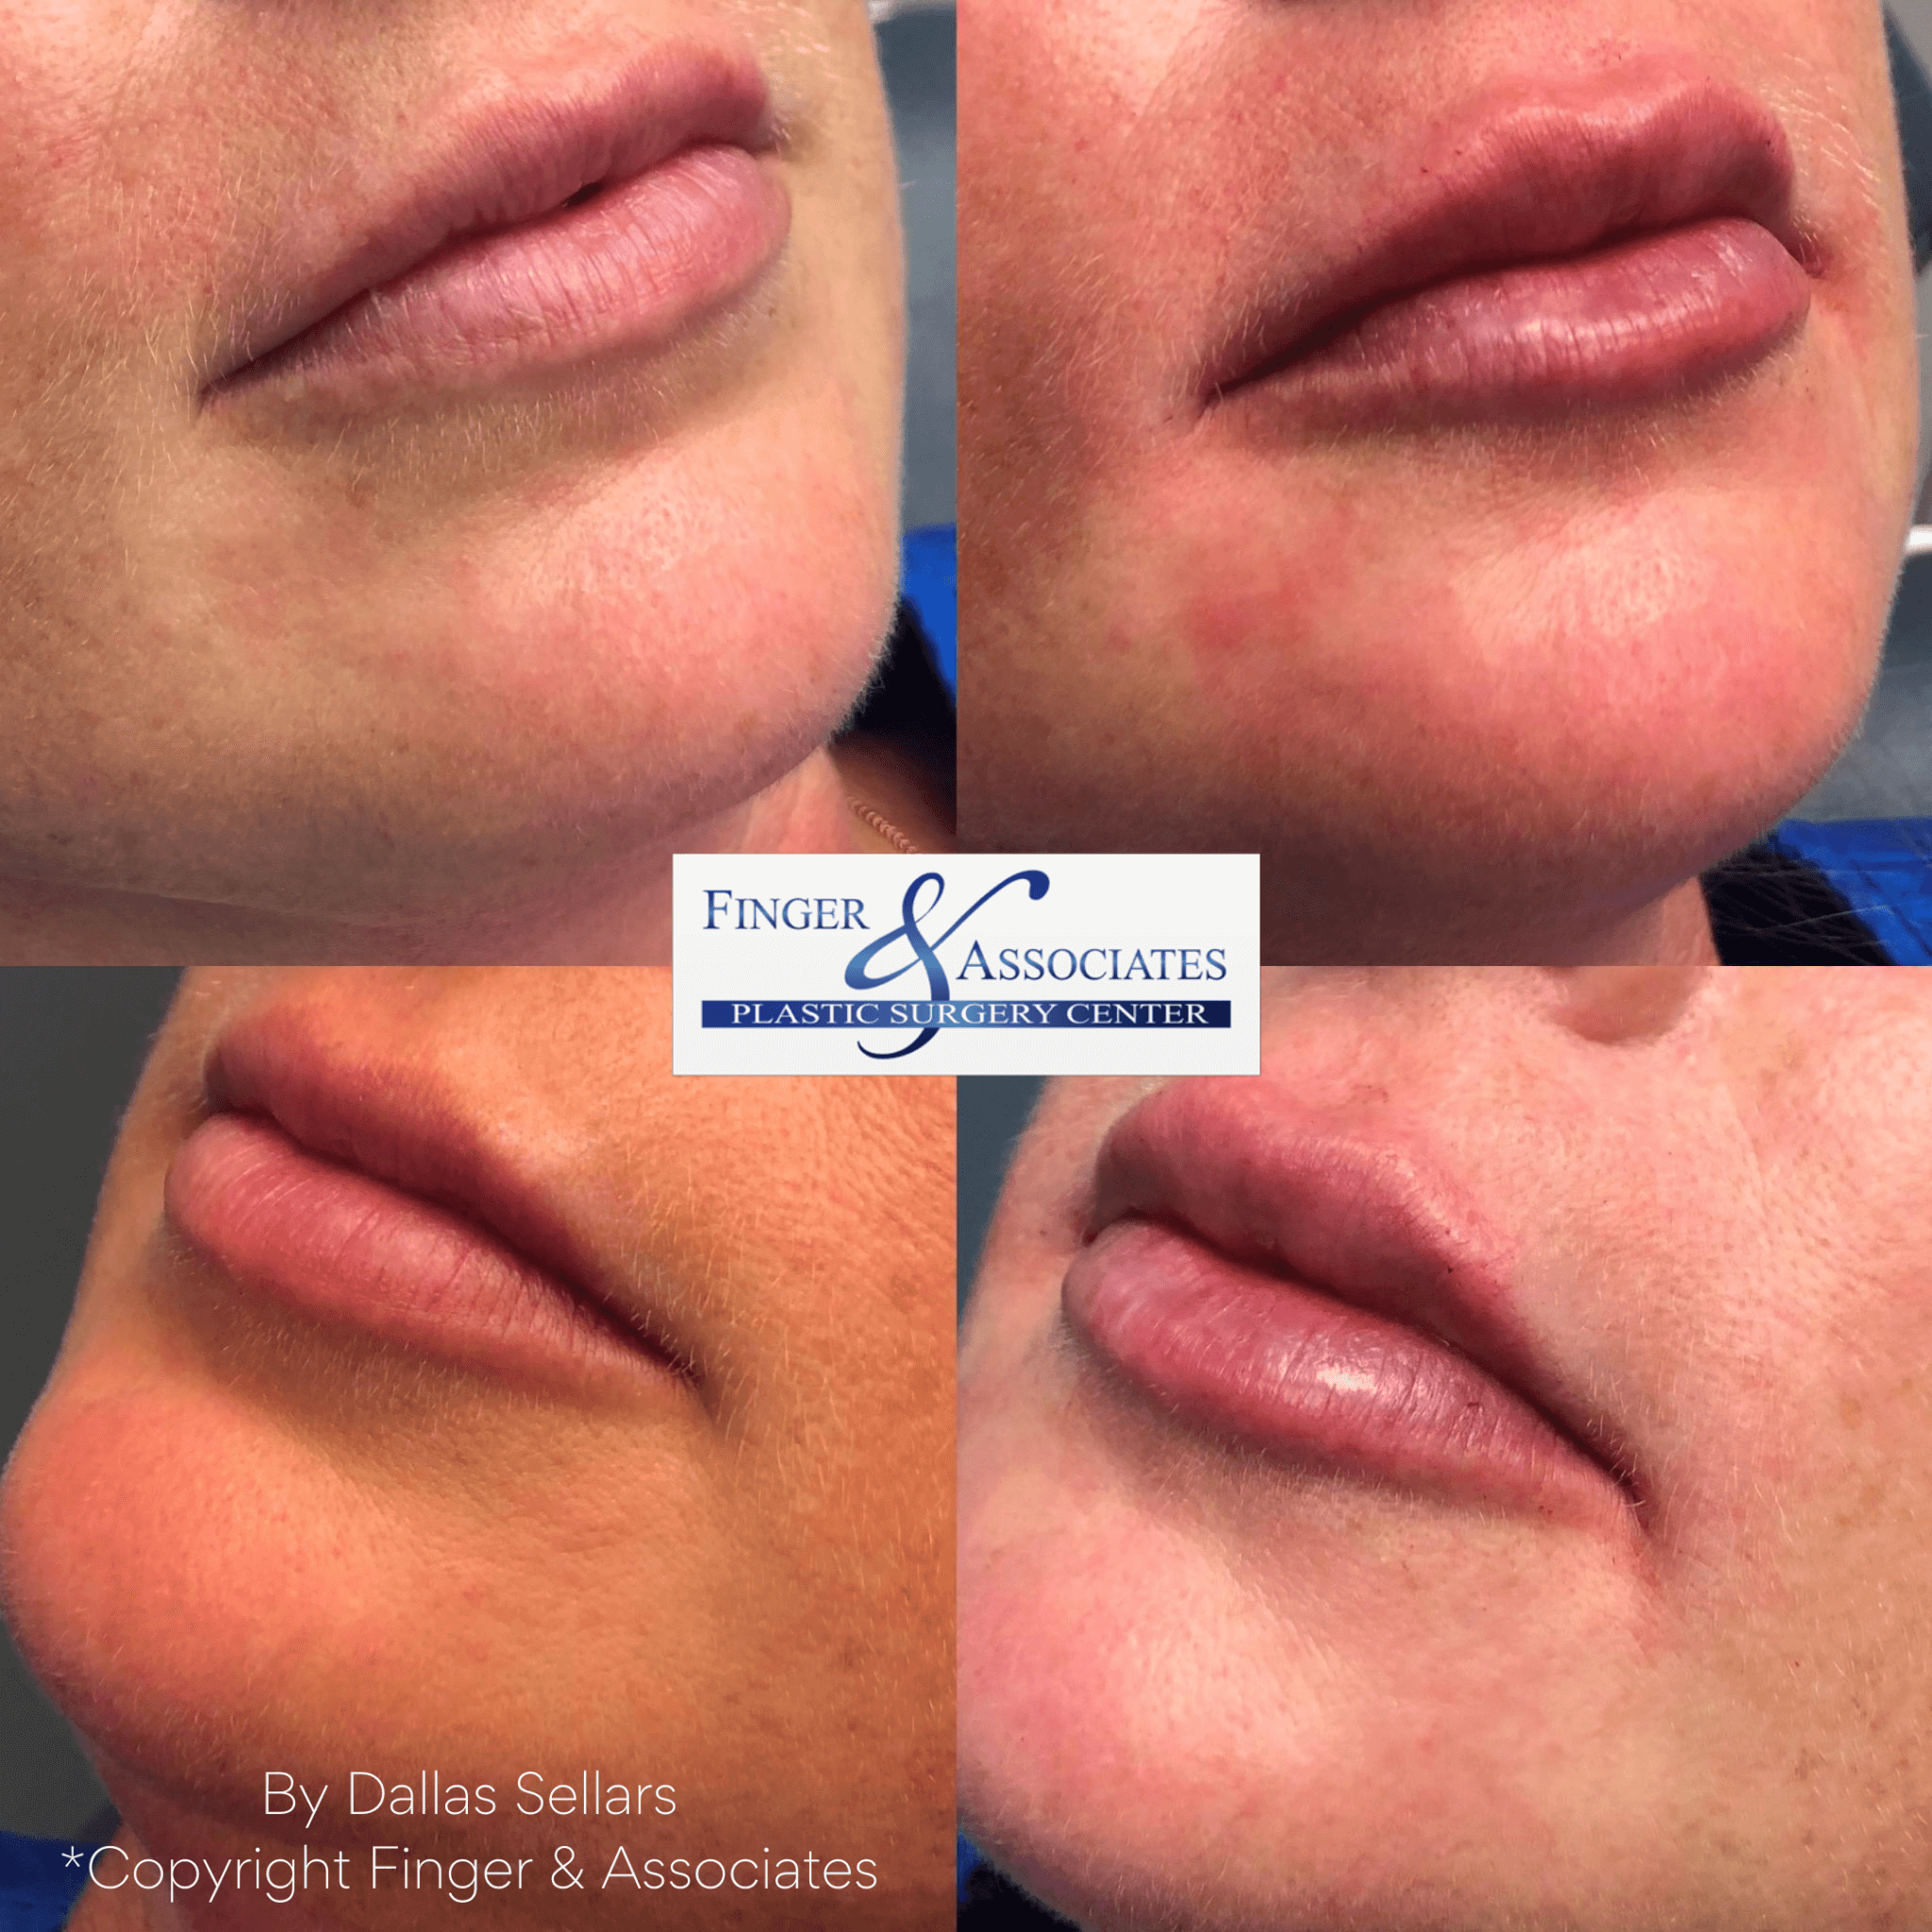 Before and immediately after 1/2 syringe of Juvederm UP by Nurse Dallas Sellars.